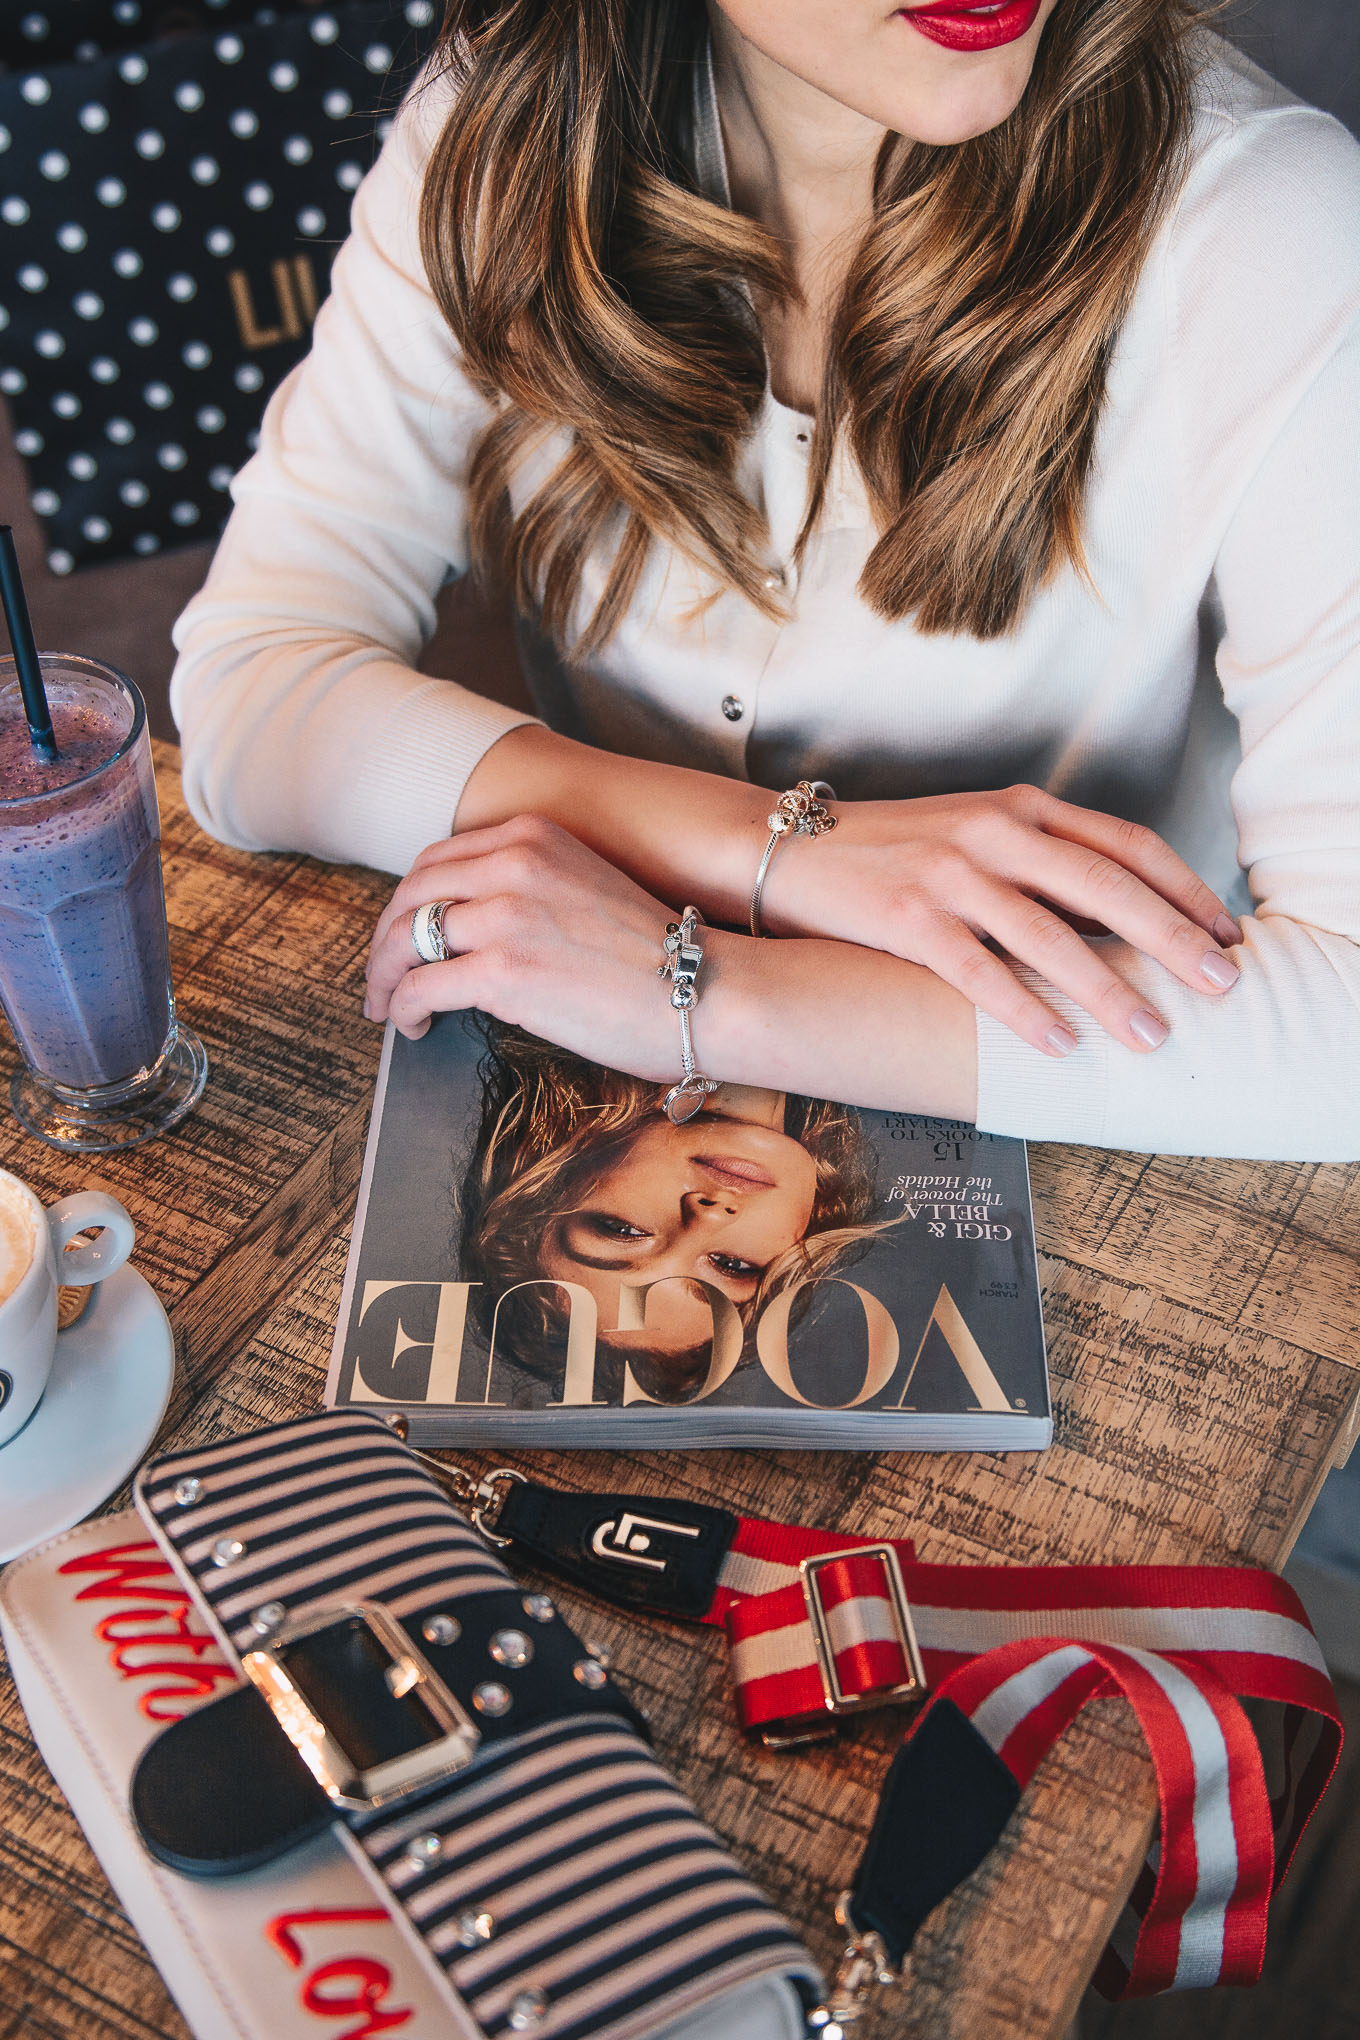 Reading vogue mahazine pandora bracelet